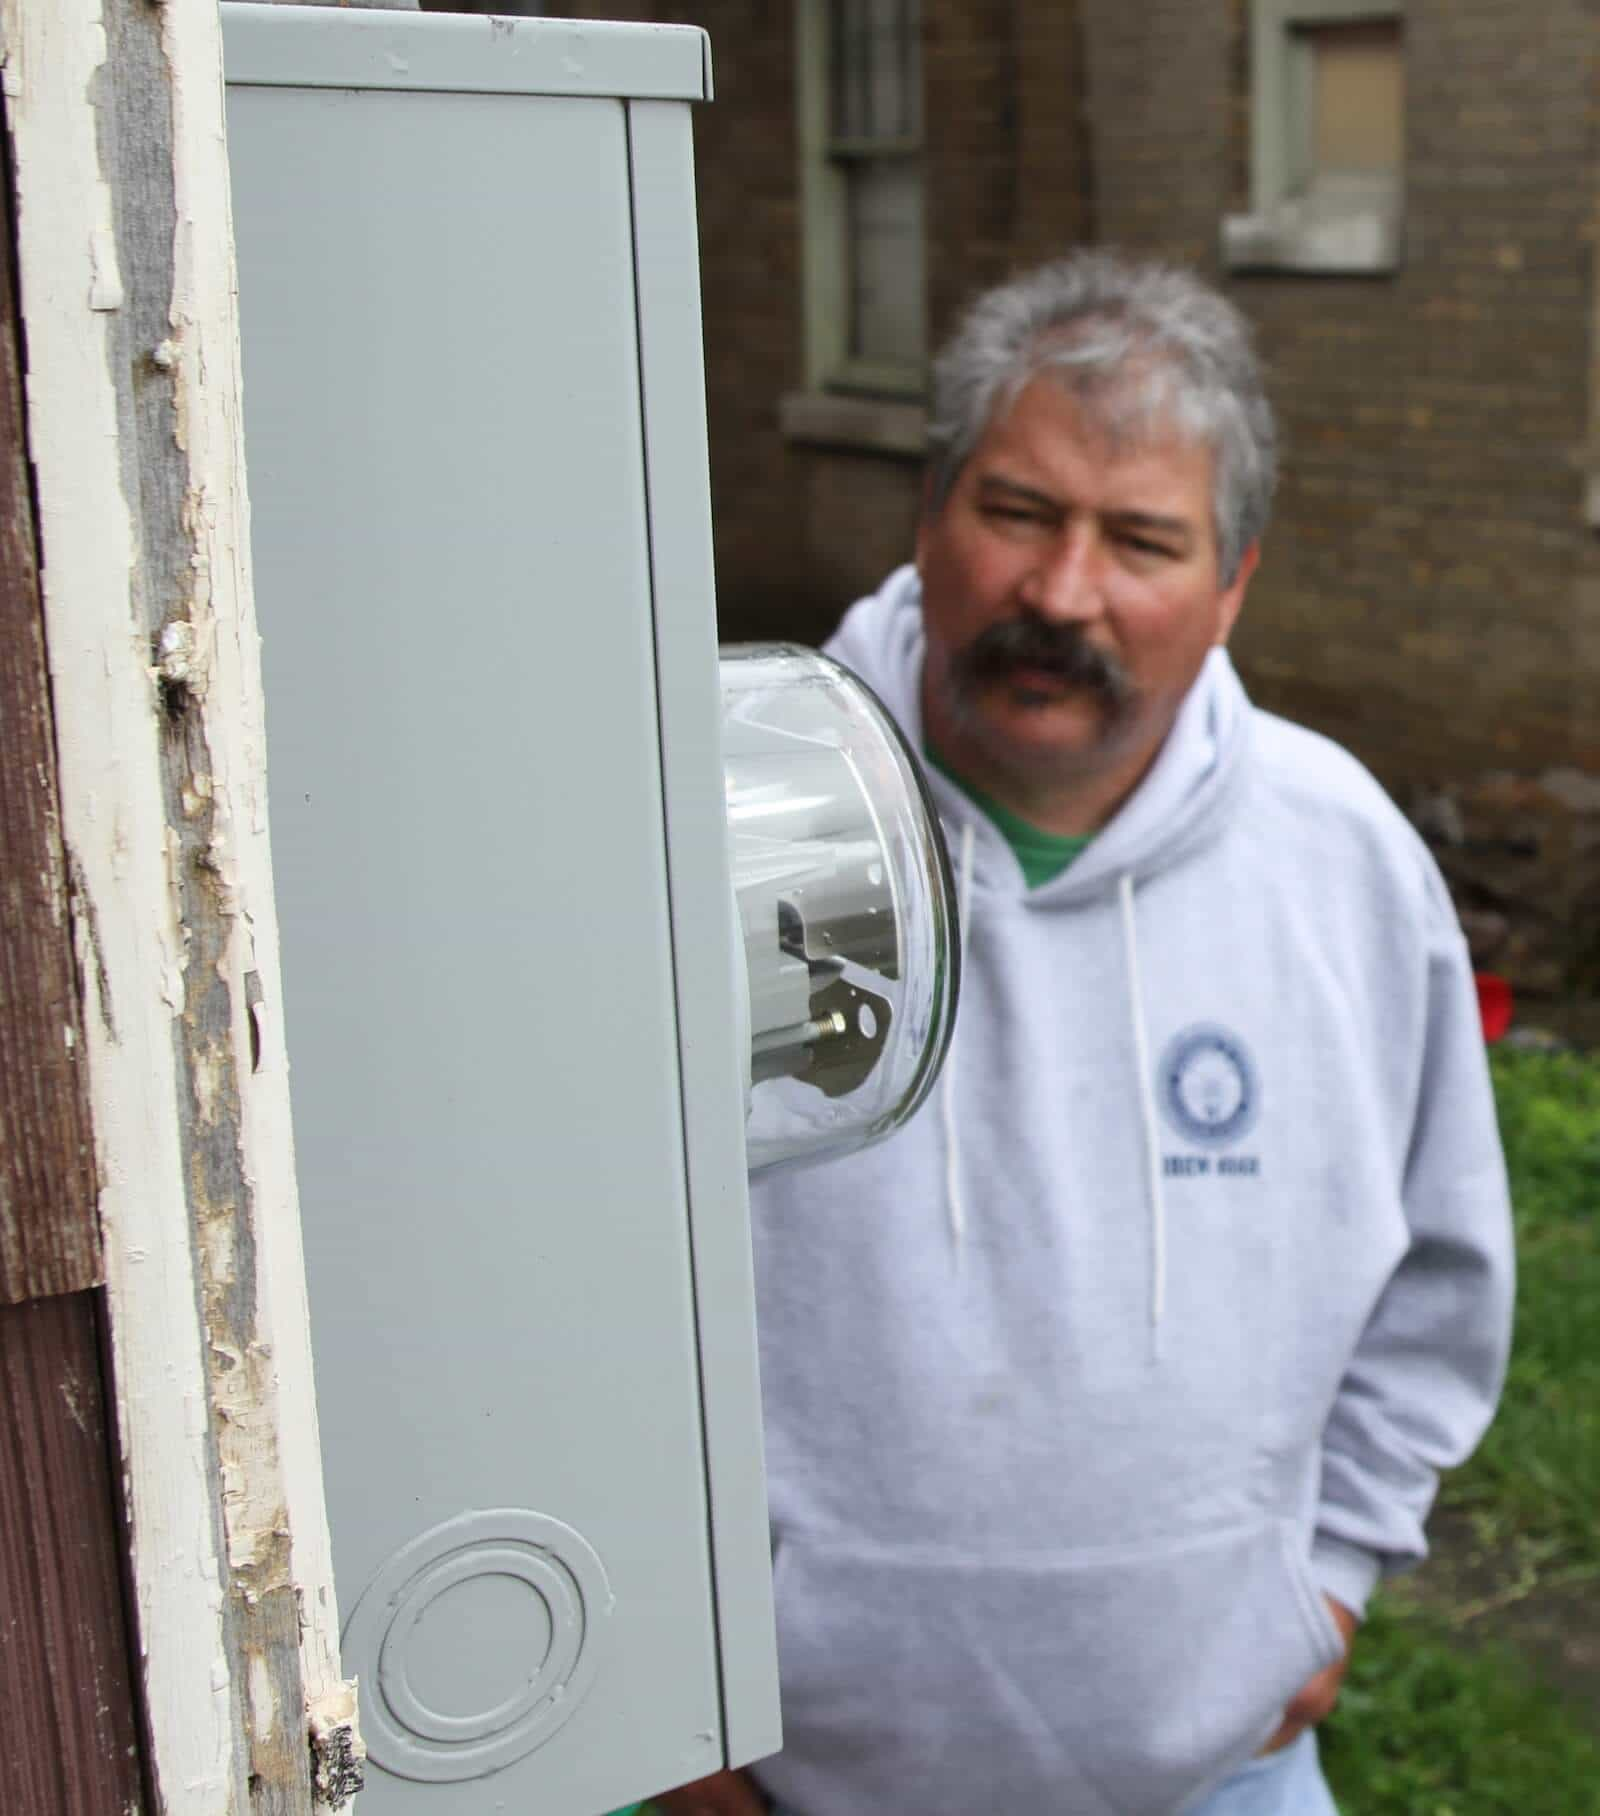 Larry Spencer inspects meter on Habitat build project